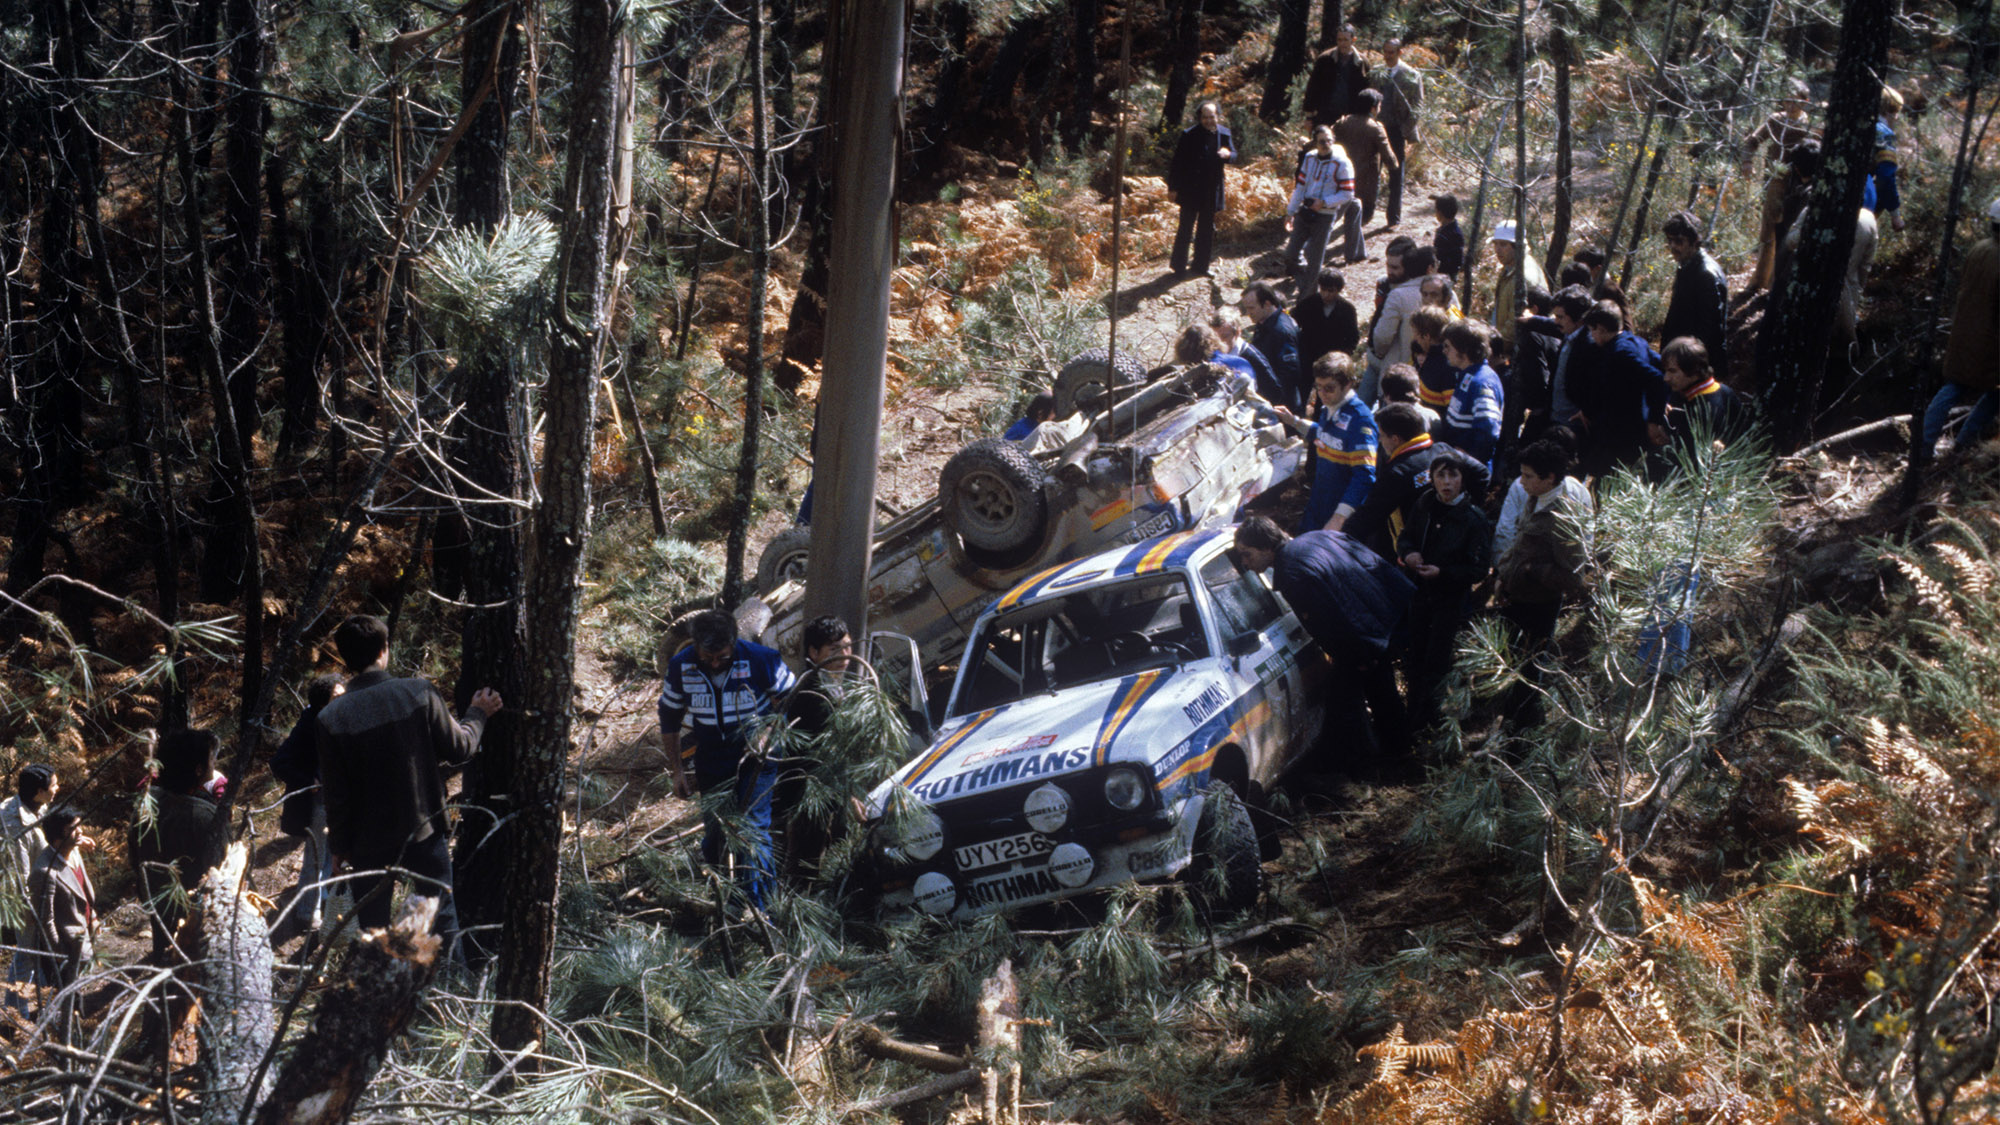 Hannu Mikkola and Ari Vatanen crashed out of the 1980 Portugal Rally